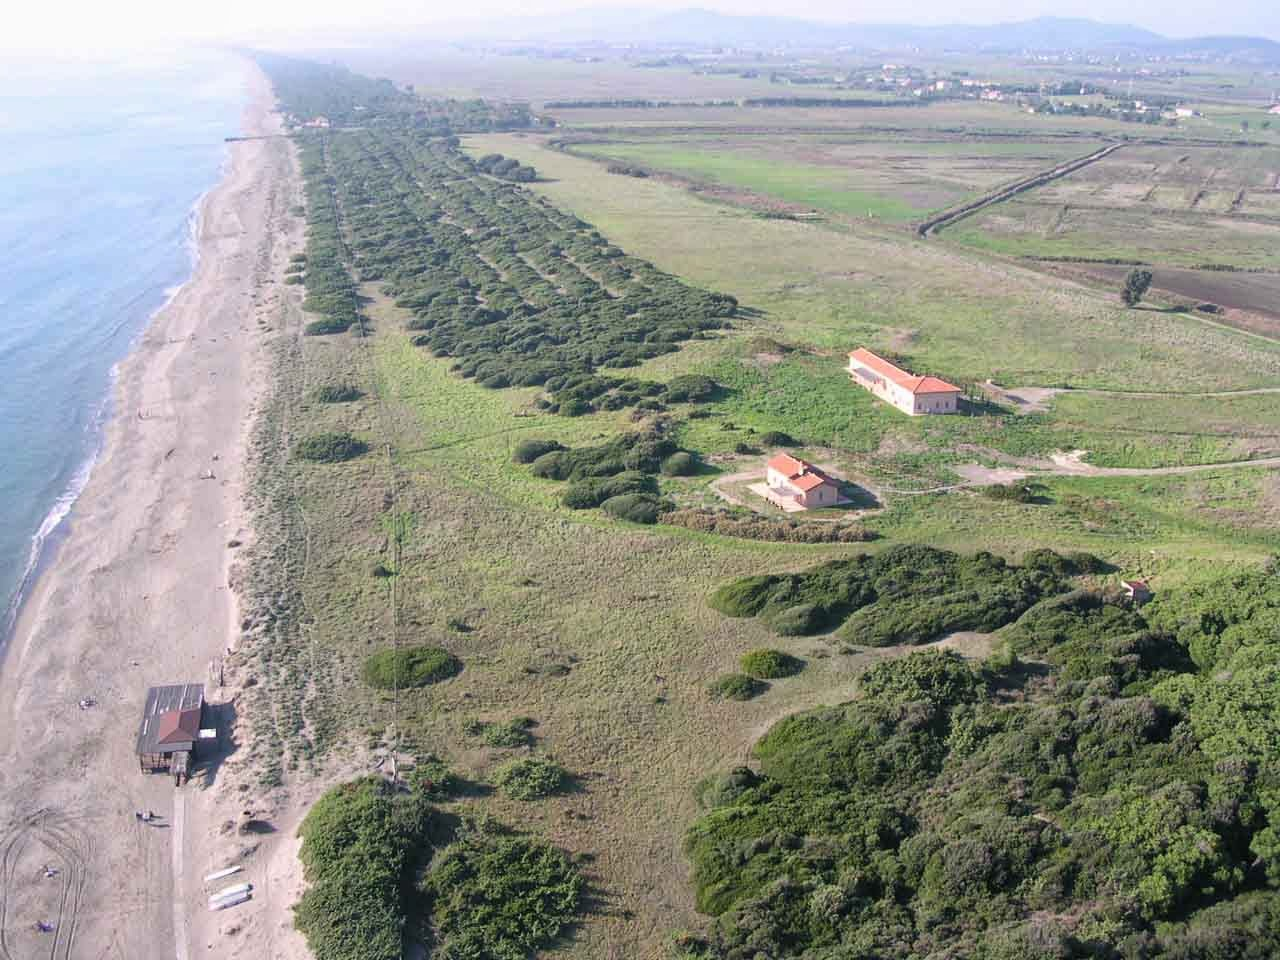 Areal view of the Duna Grande property near Southern Tuscany